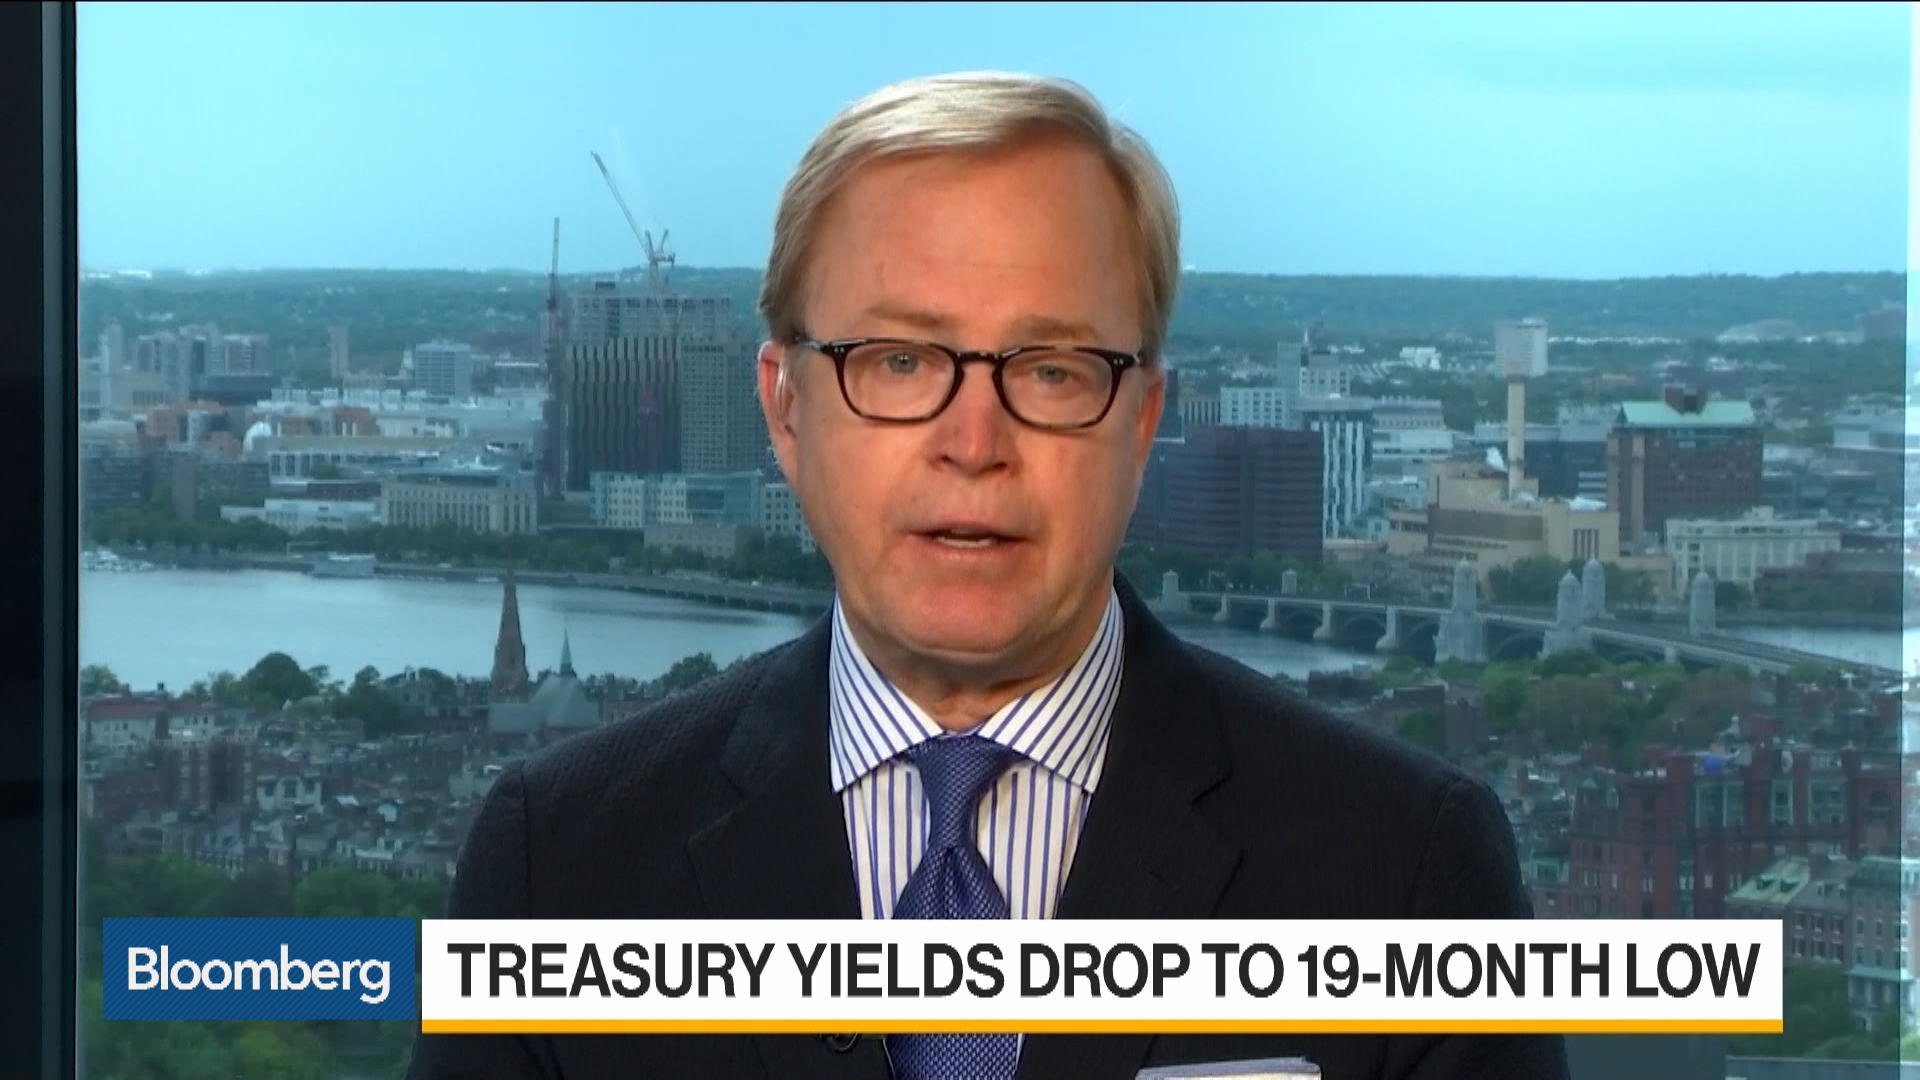 Markets Are Dealing With the Price of Uncertainty, Timmer Says